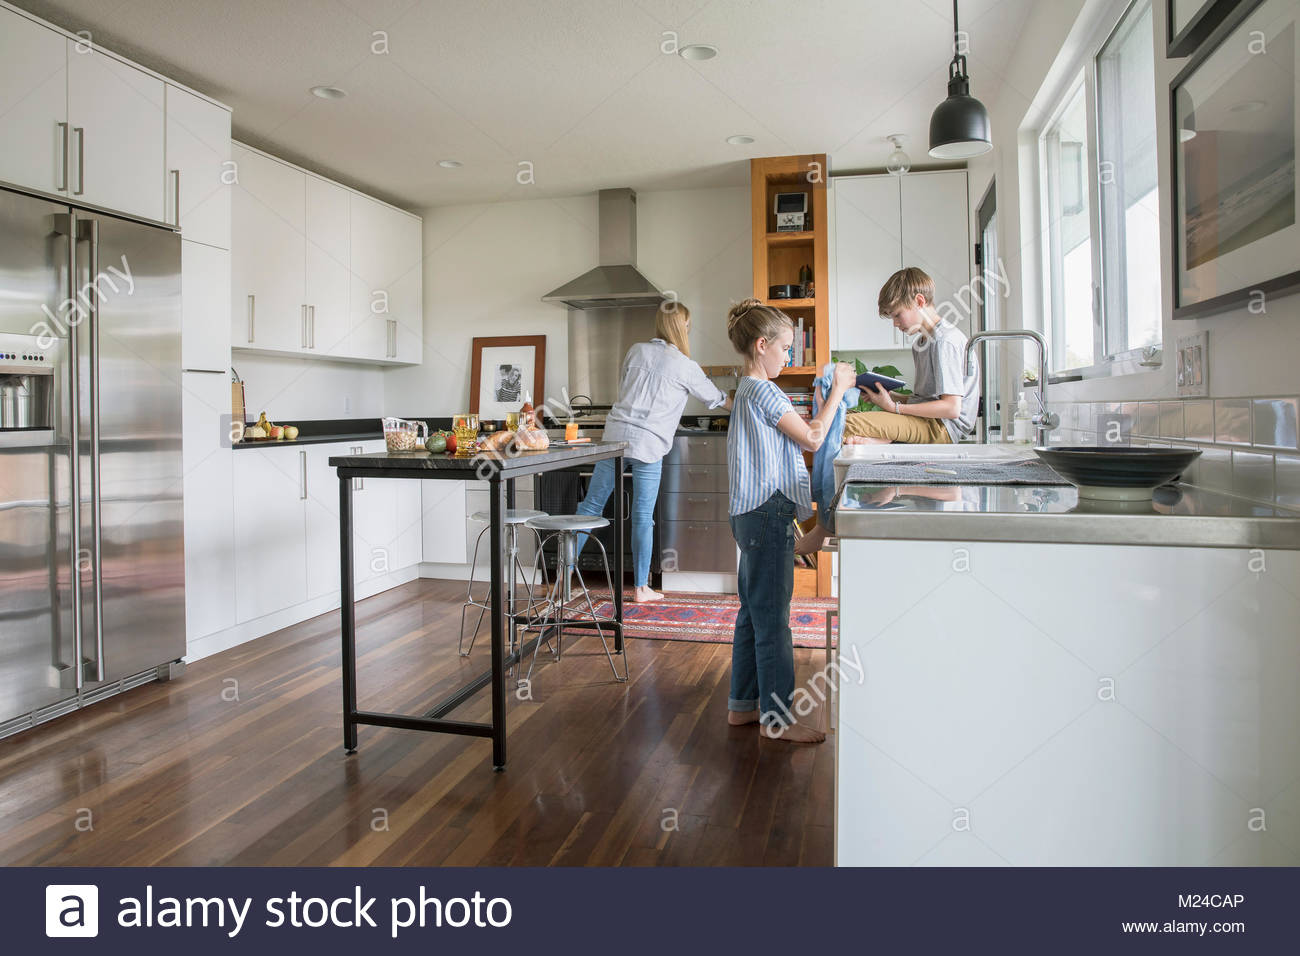 Family cooking and doing dishes in kitchen - Stock Image